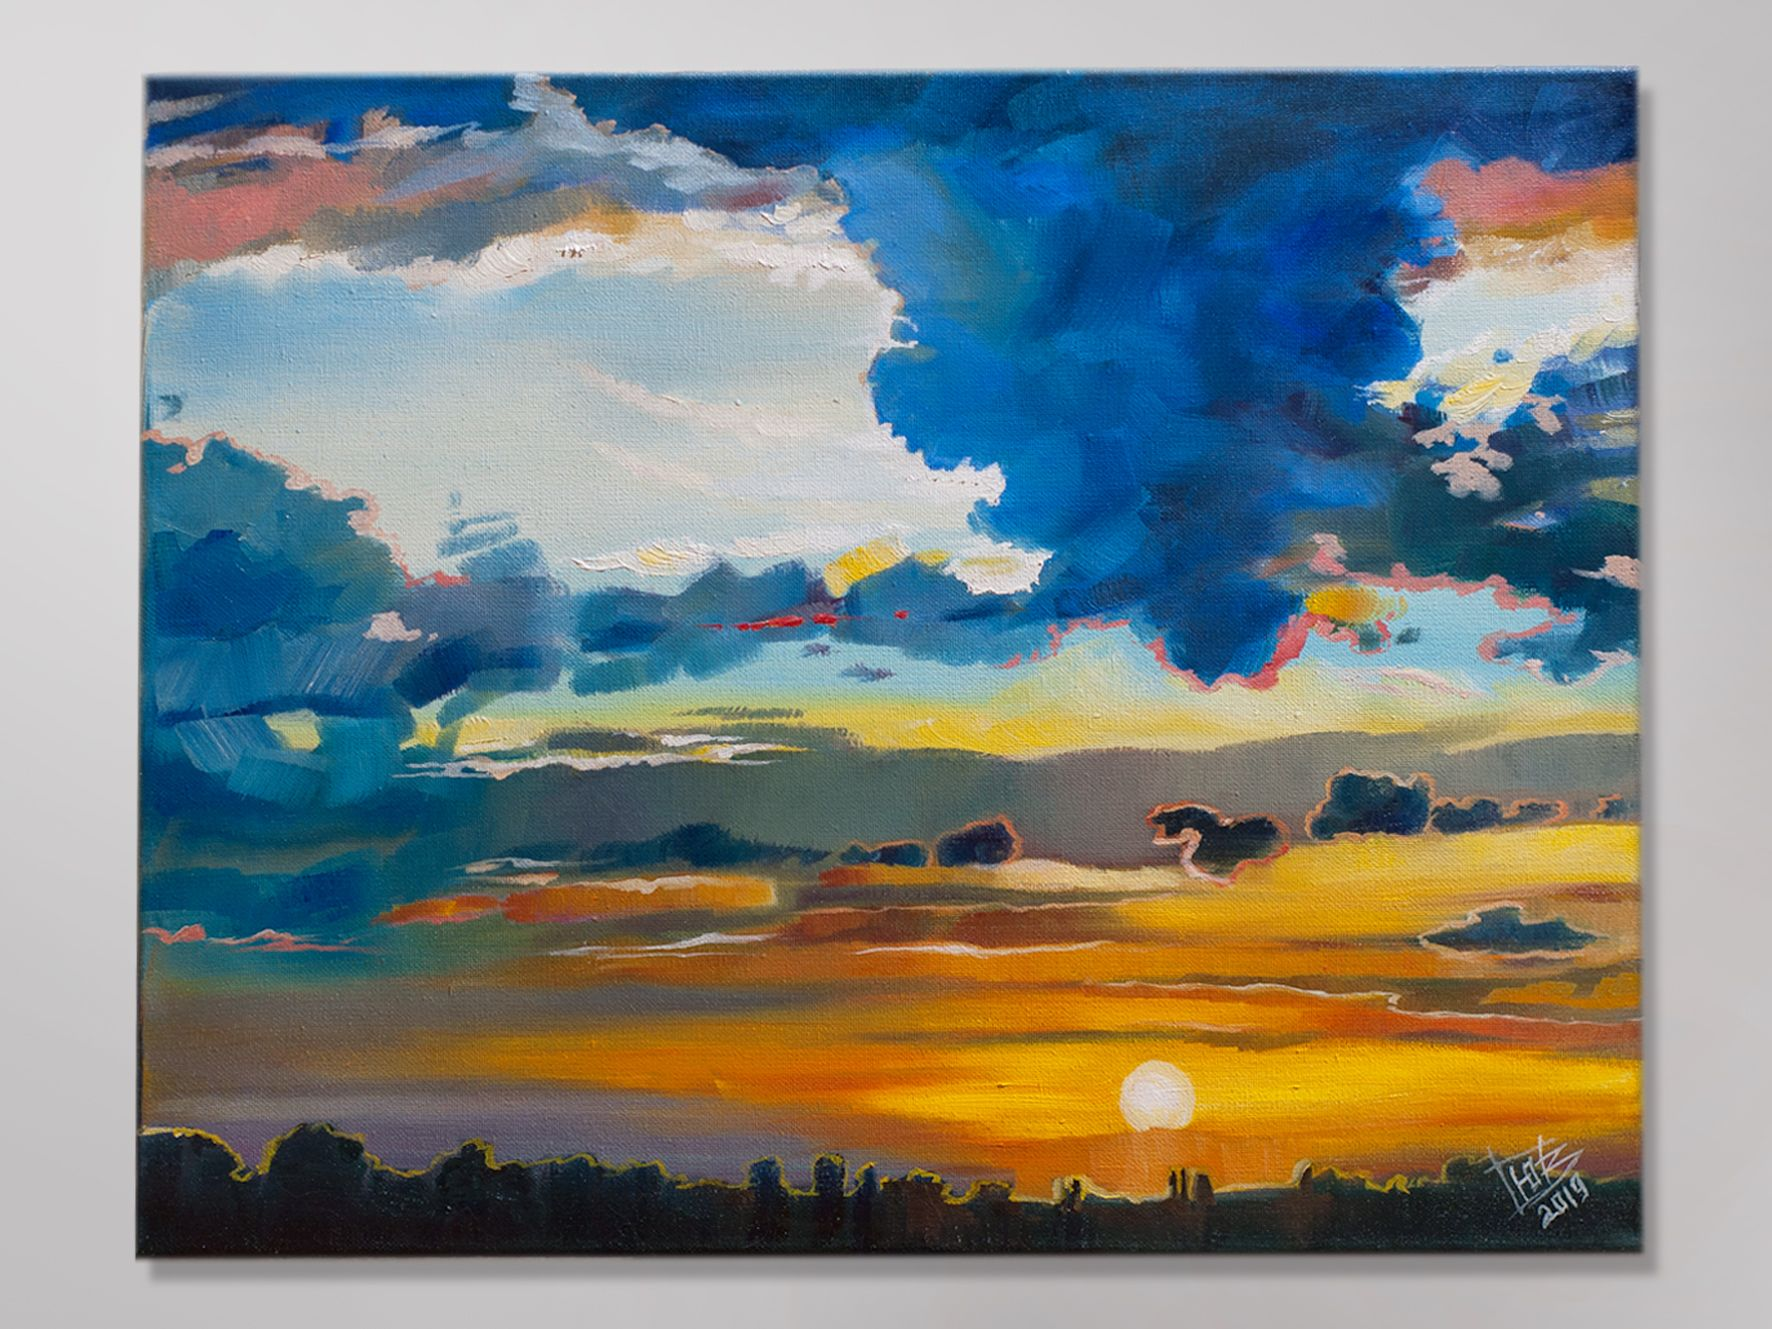 Sunset Oil Painting Colorful Clouds Painting Original Oil Painting Of Clouds Original Art Landscape Painting Canvas Painting Cloud Painting Colorful Clouds Painting